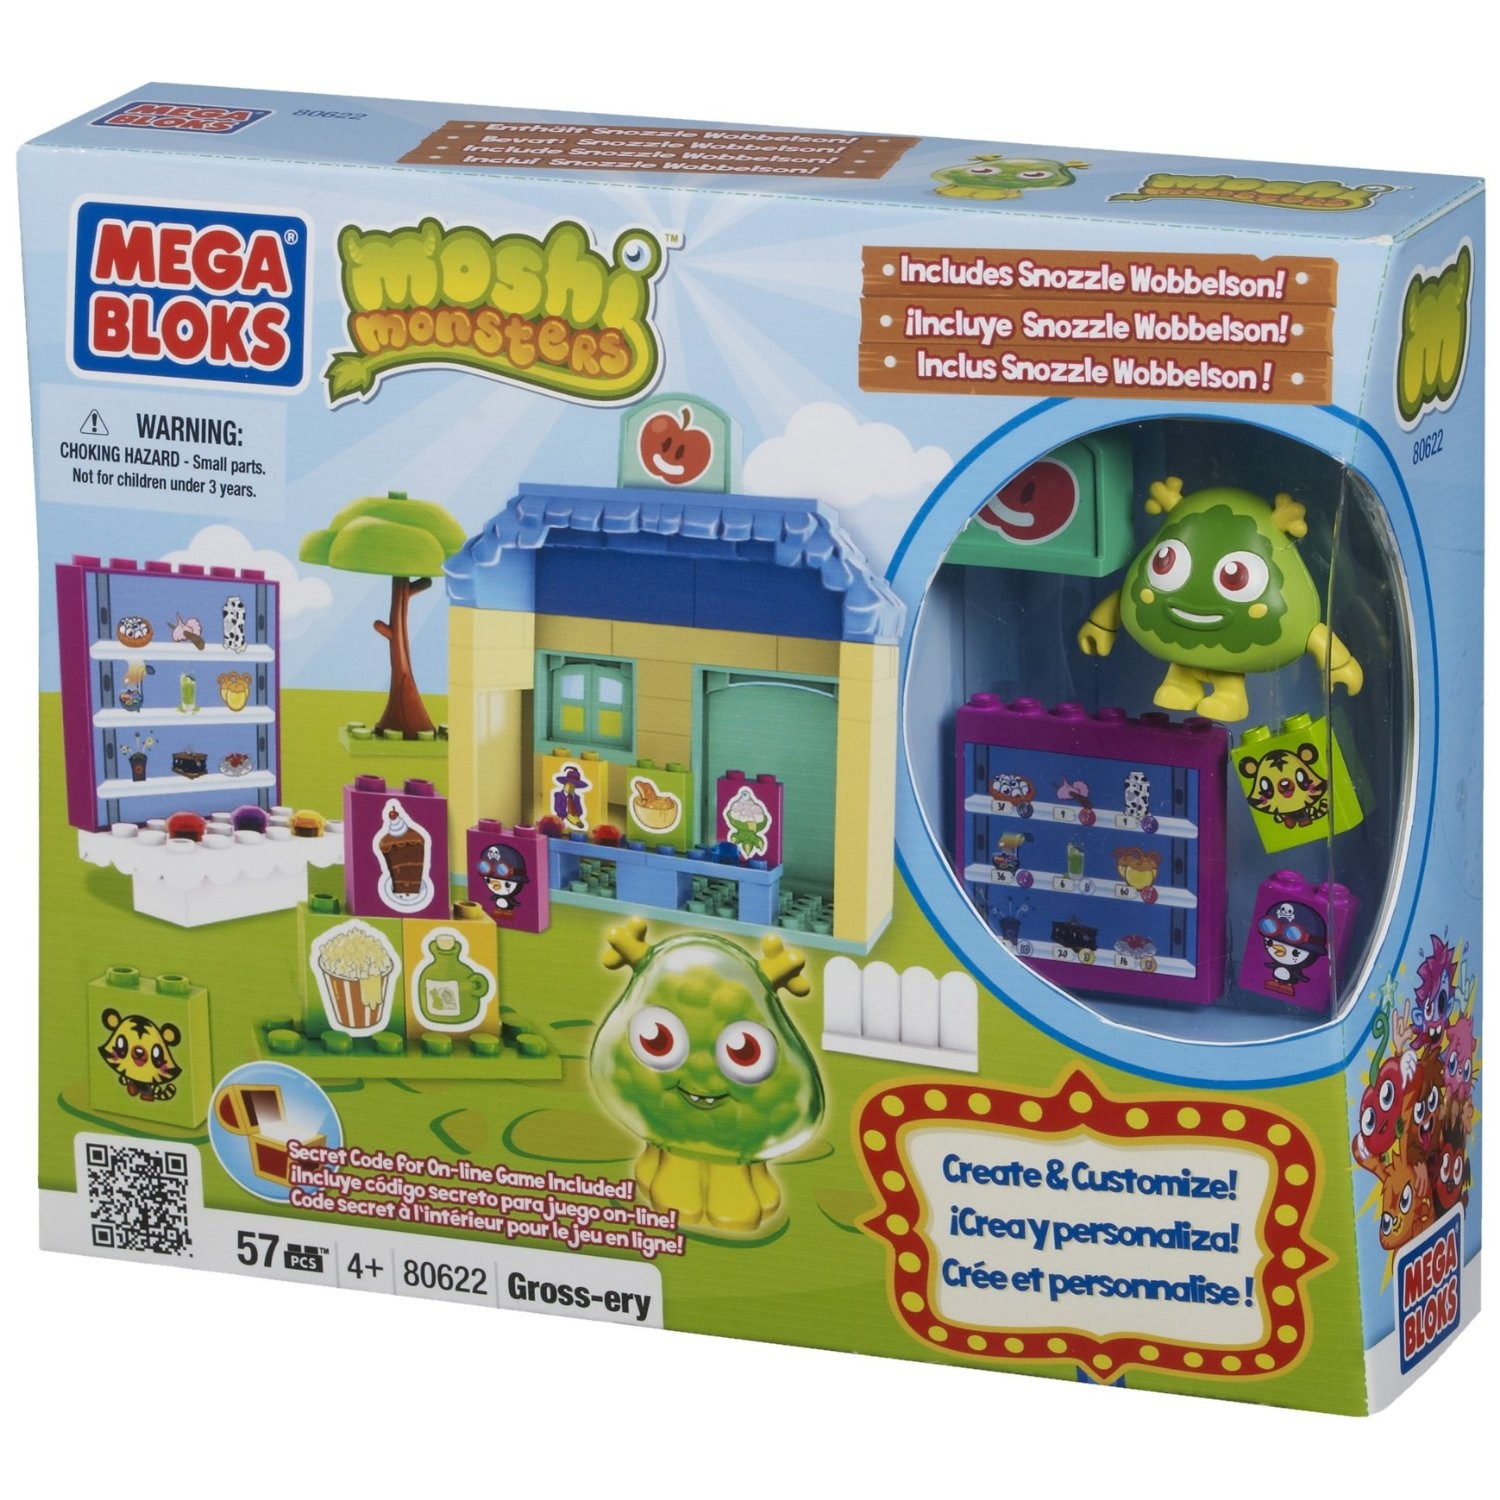 Moshi Monsters Mega Bloks Gross-ery Store 80622